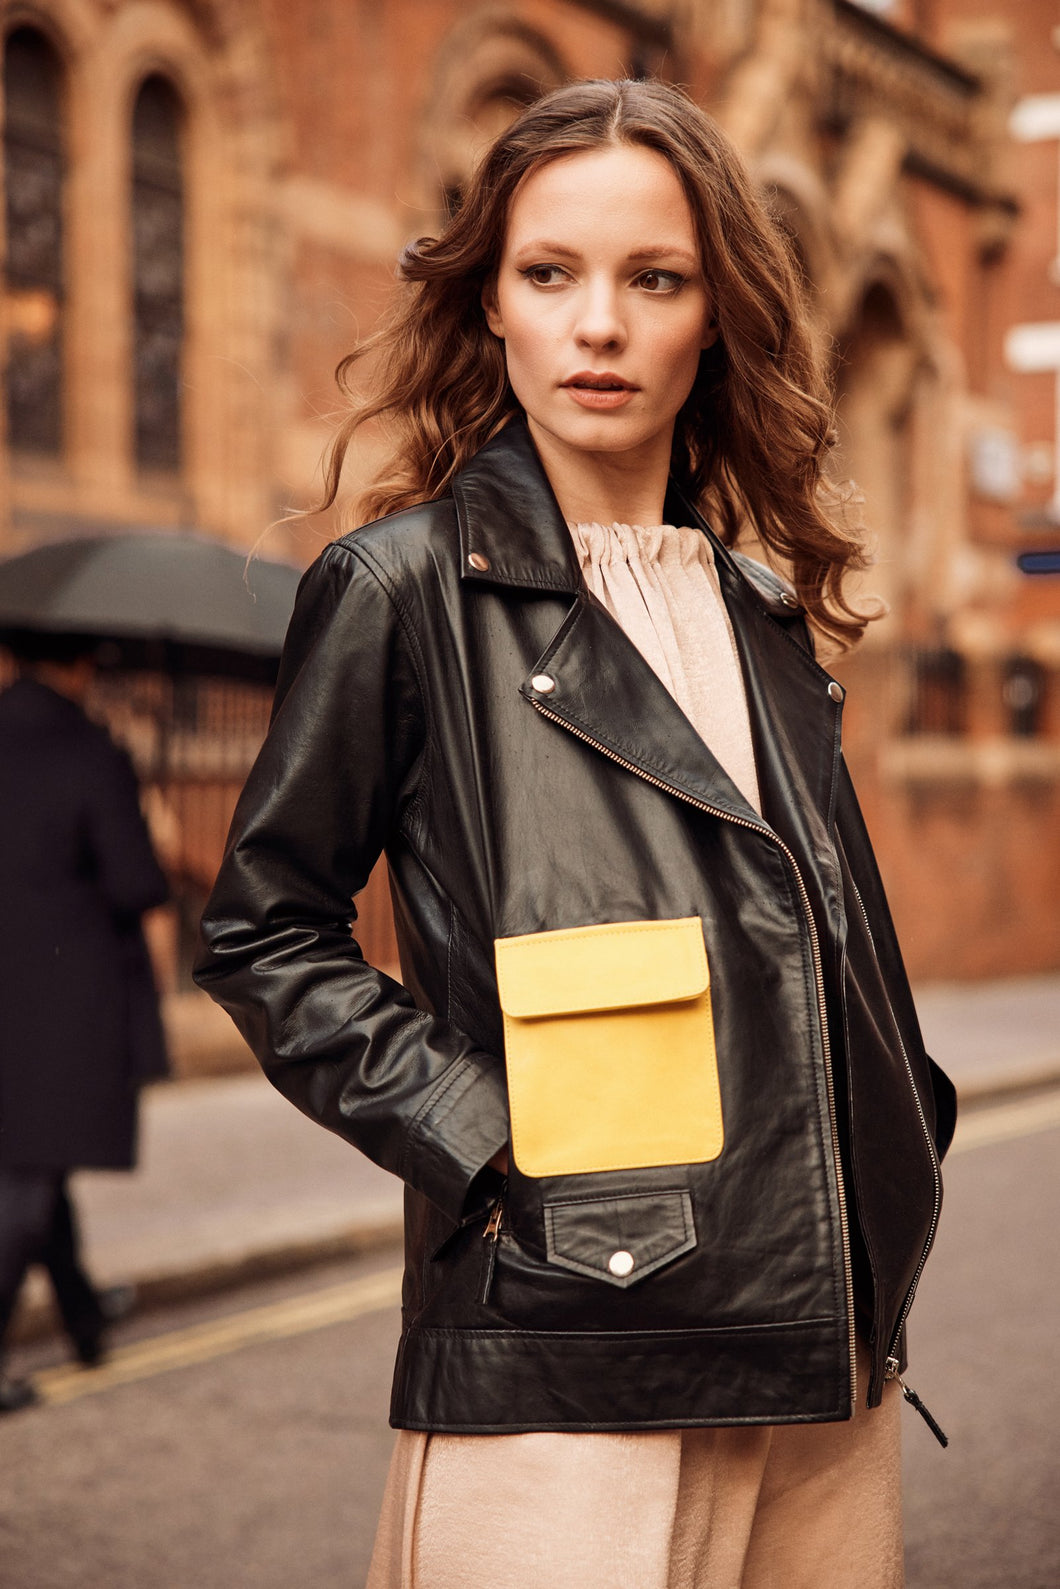 Black leather jacket with yellow pocket